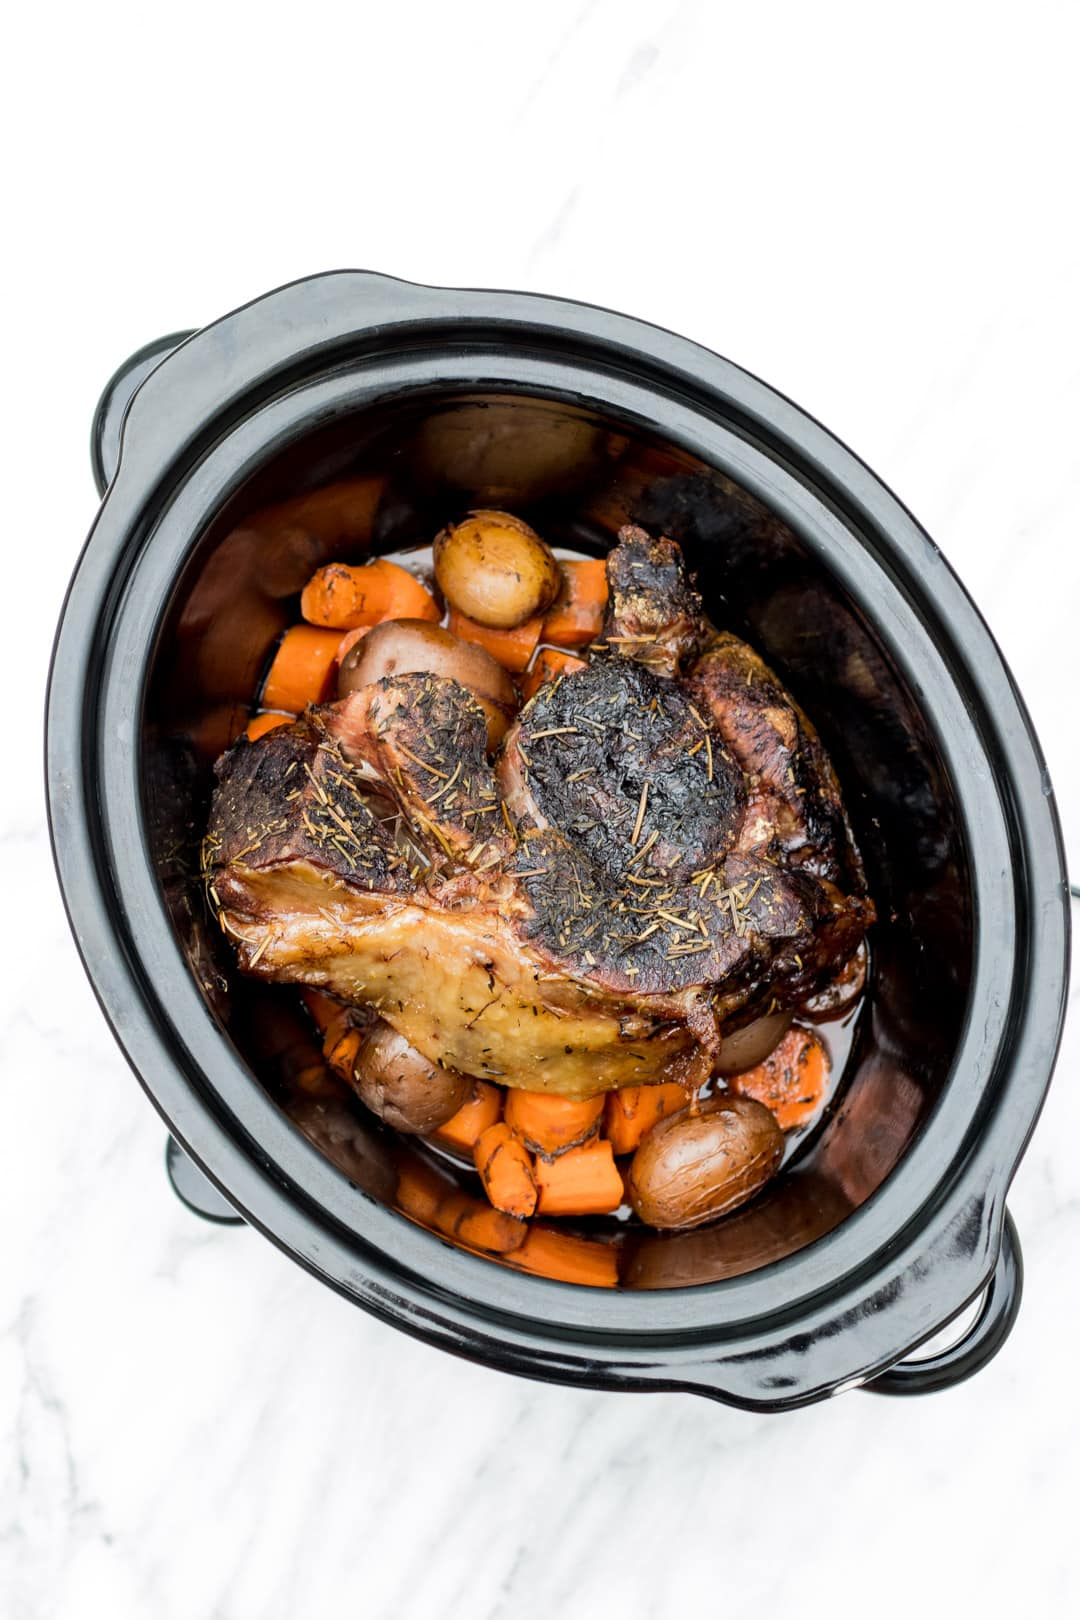 A crockpot filled with potatoes, carrots, and beef roast.